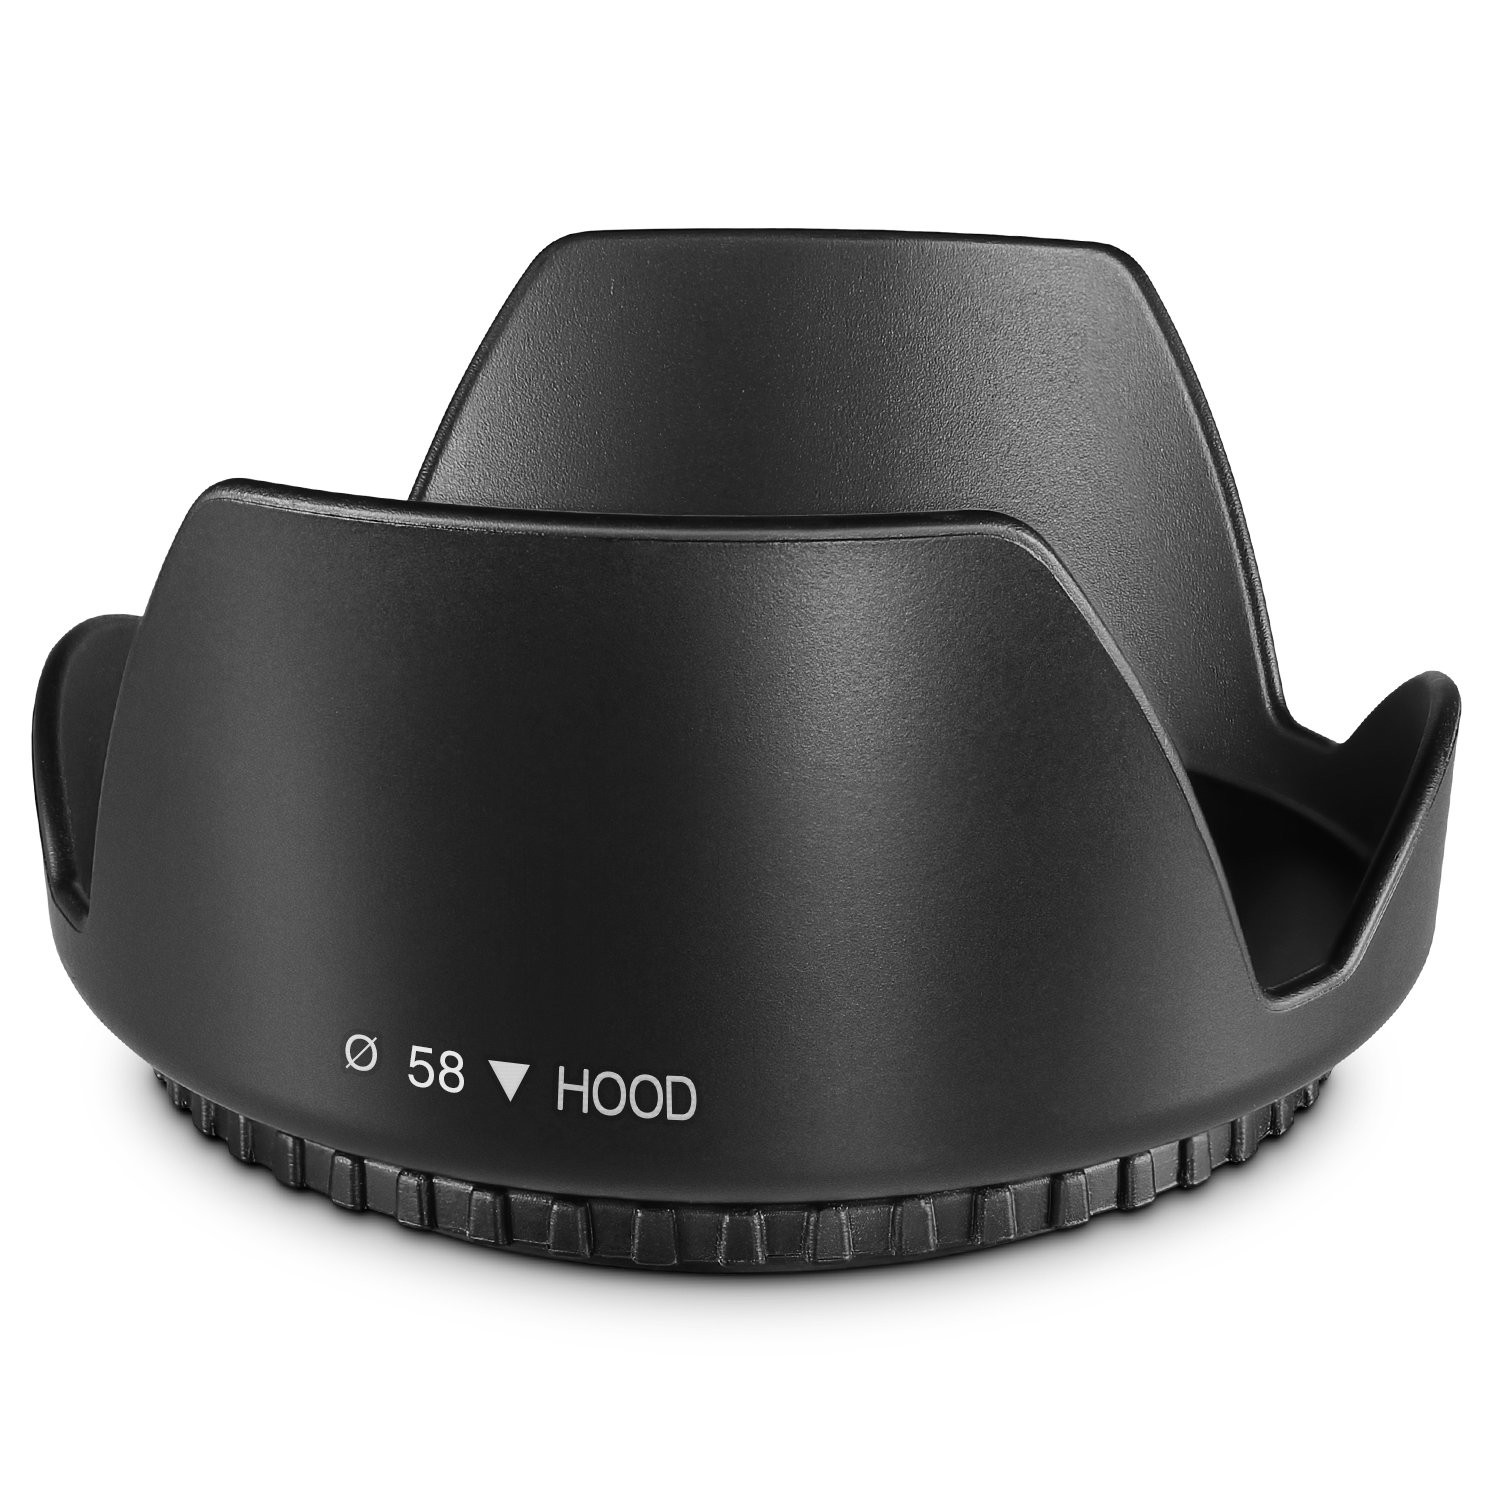 58MM Tulip Flower Lens Hood for Canon EOS 77D 80D 90D Rebel T8i T7 T7i T6i T6s T6 SL2 SL3 DSLR Cameras with Canon EF-S 18-55mm f/3.5-5.6 is Lens and Select Nikon Lenses